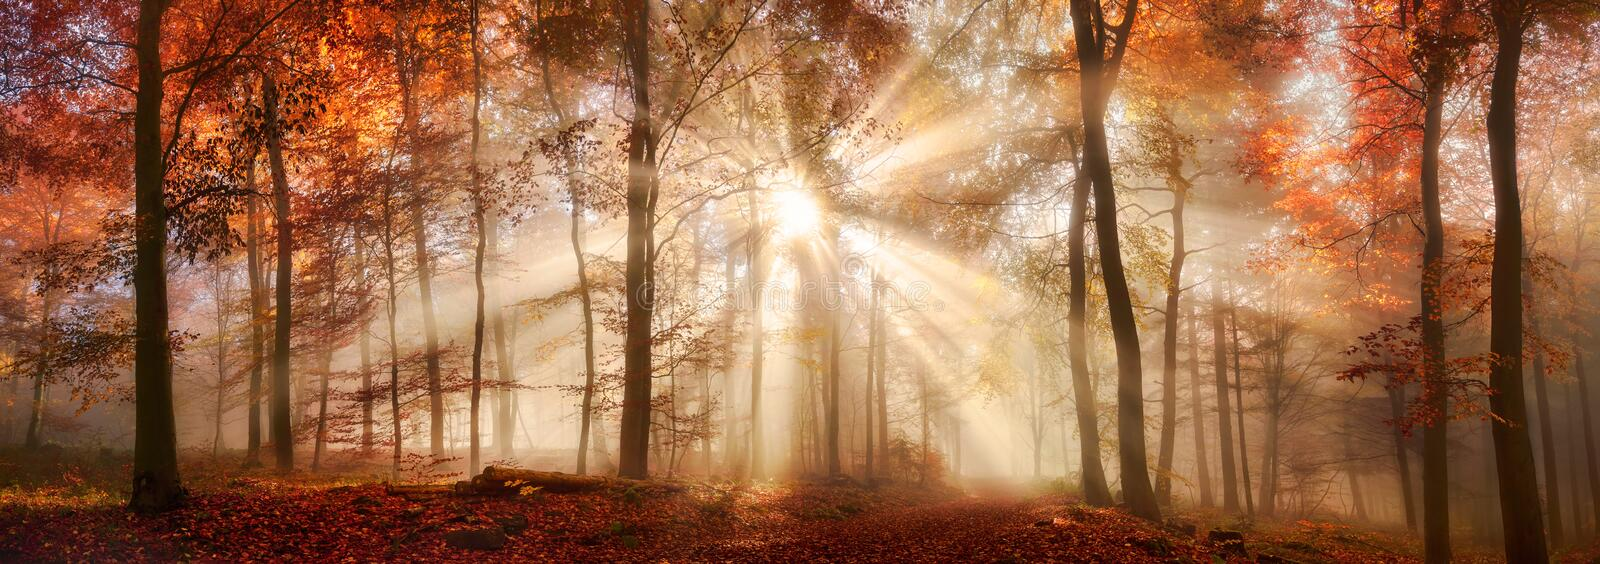 Download Rays Of Sunlight In A Misty Autumn Forest Stock Image - Image of foggy, beams: 76383677